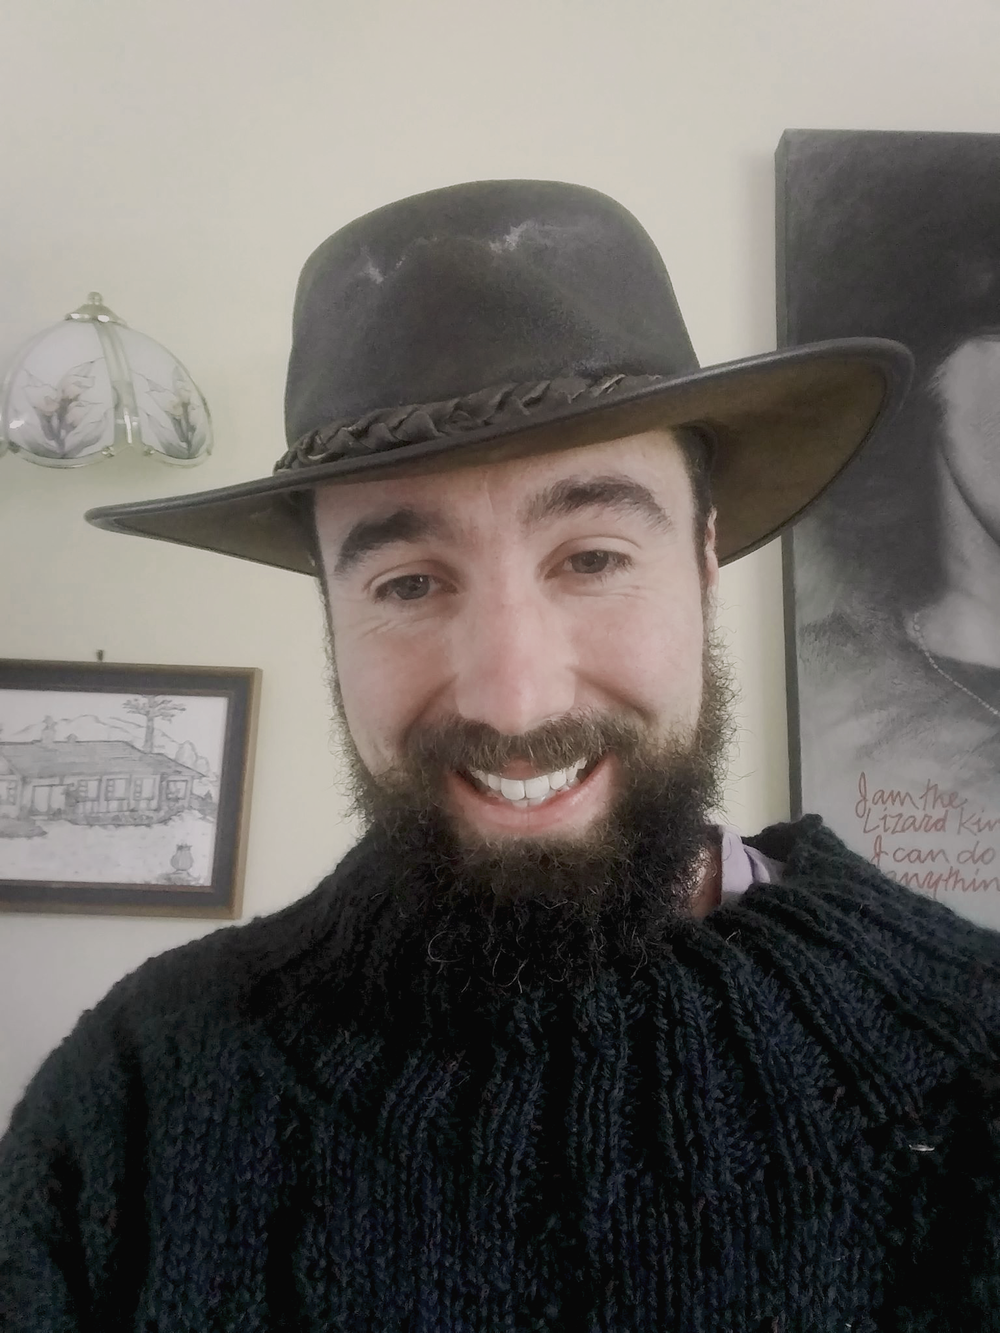 Beard update - featuring my new jersey knitted by my mum and an oil skin hat given to me by my friend in Fox Glacier.